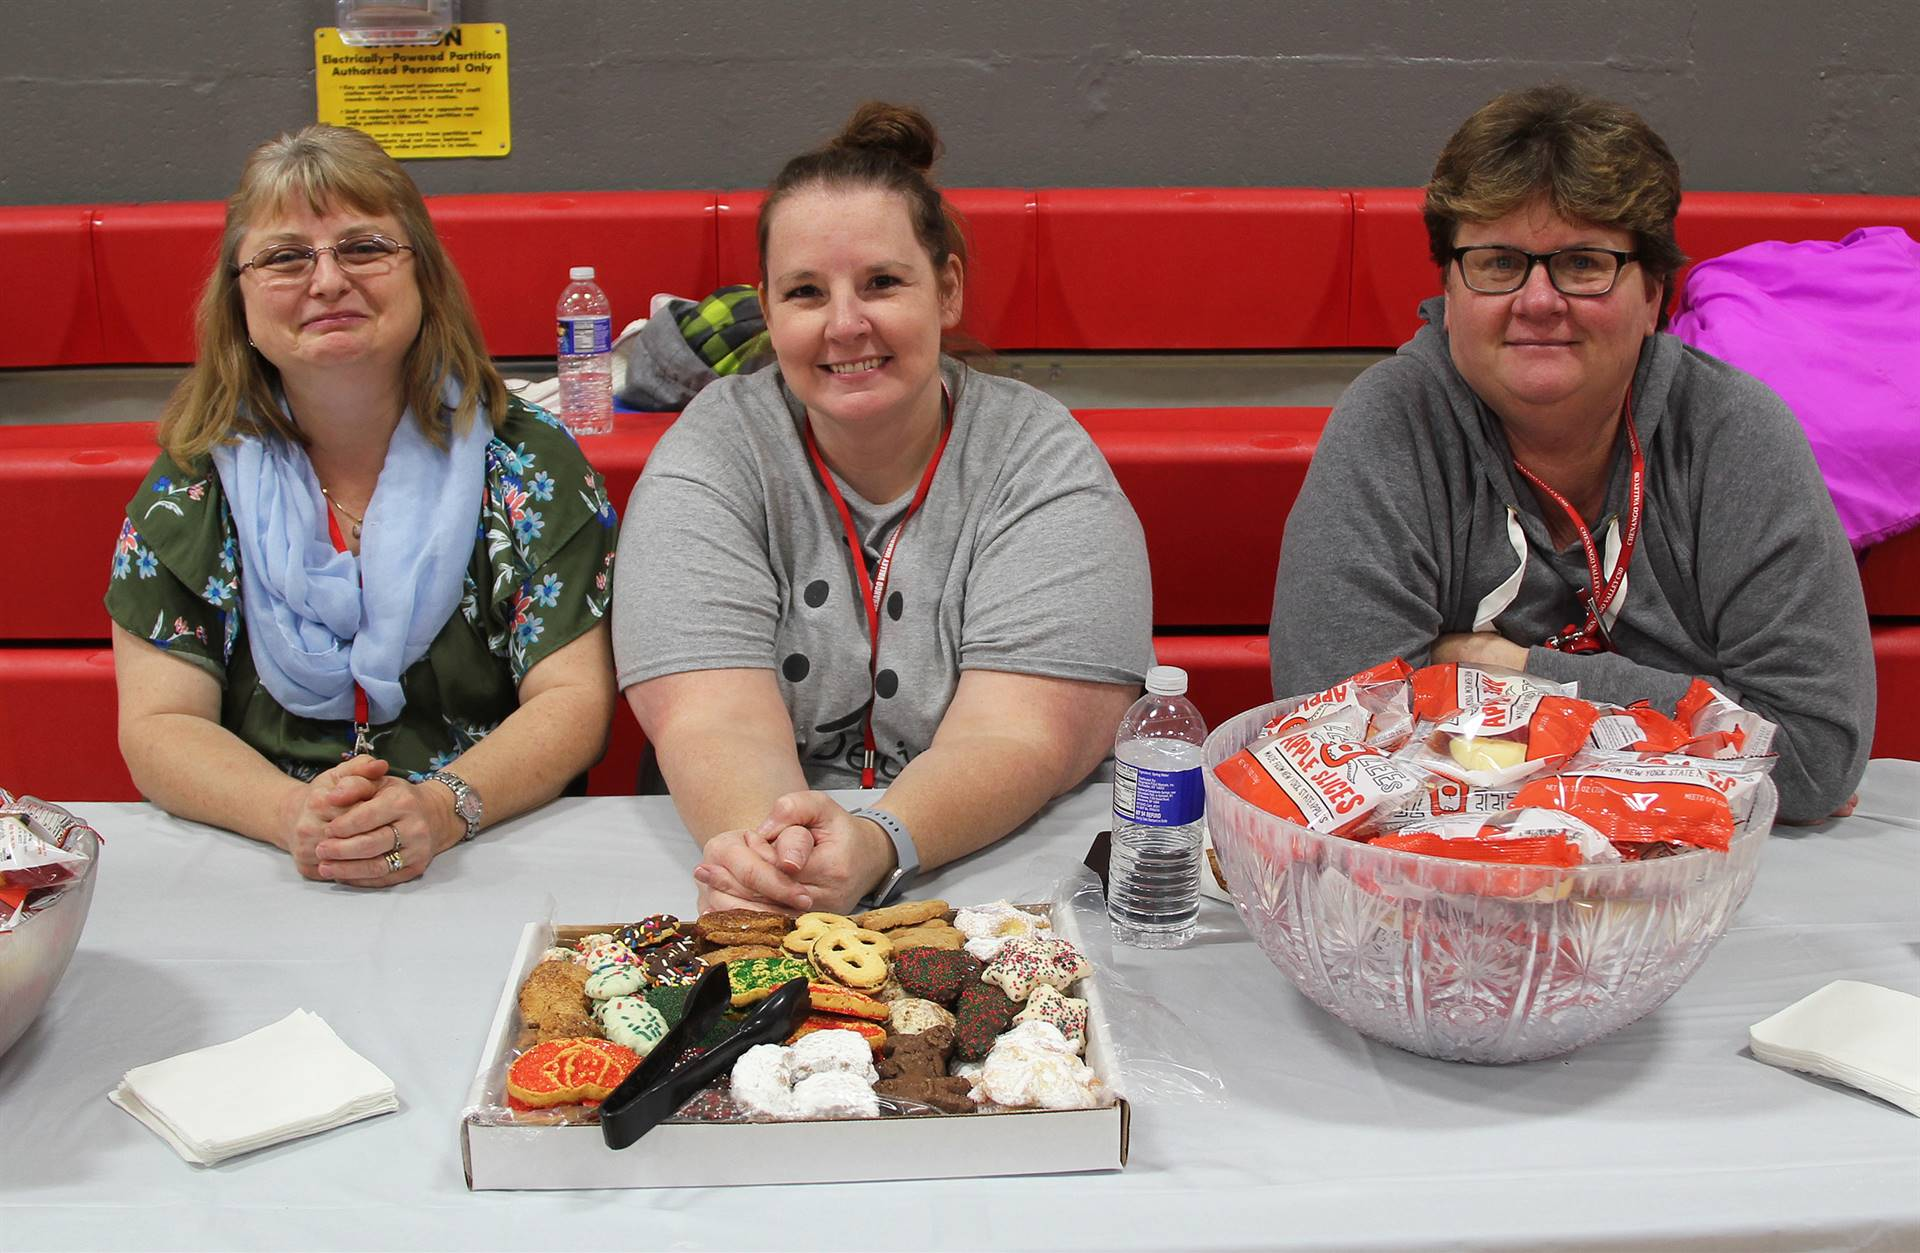 three people smiling at snack table